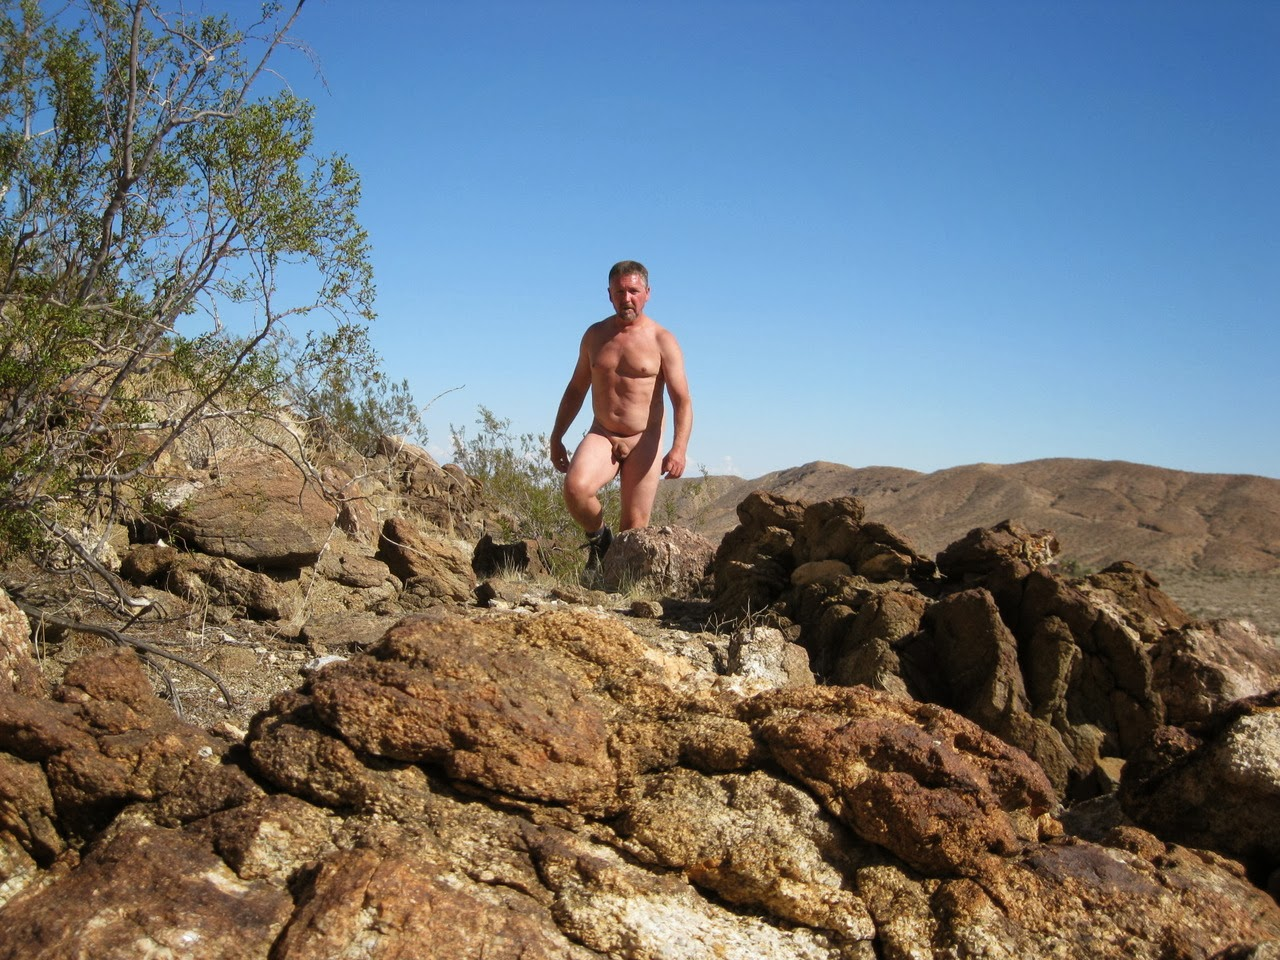 Apologise, Women nude desert hiking pity, that